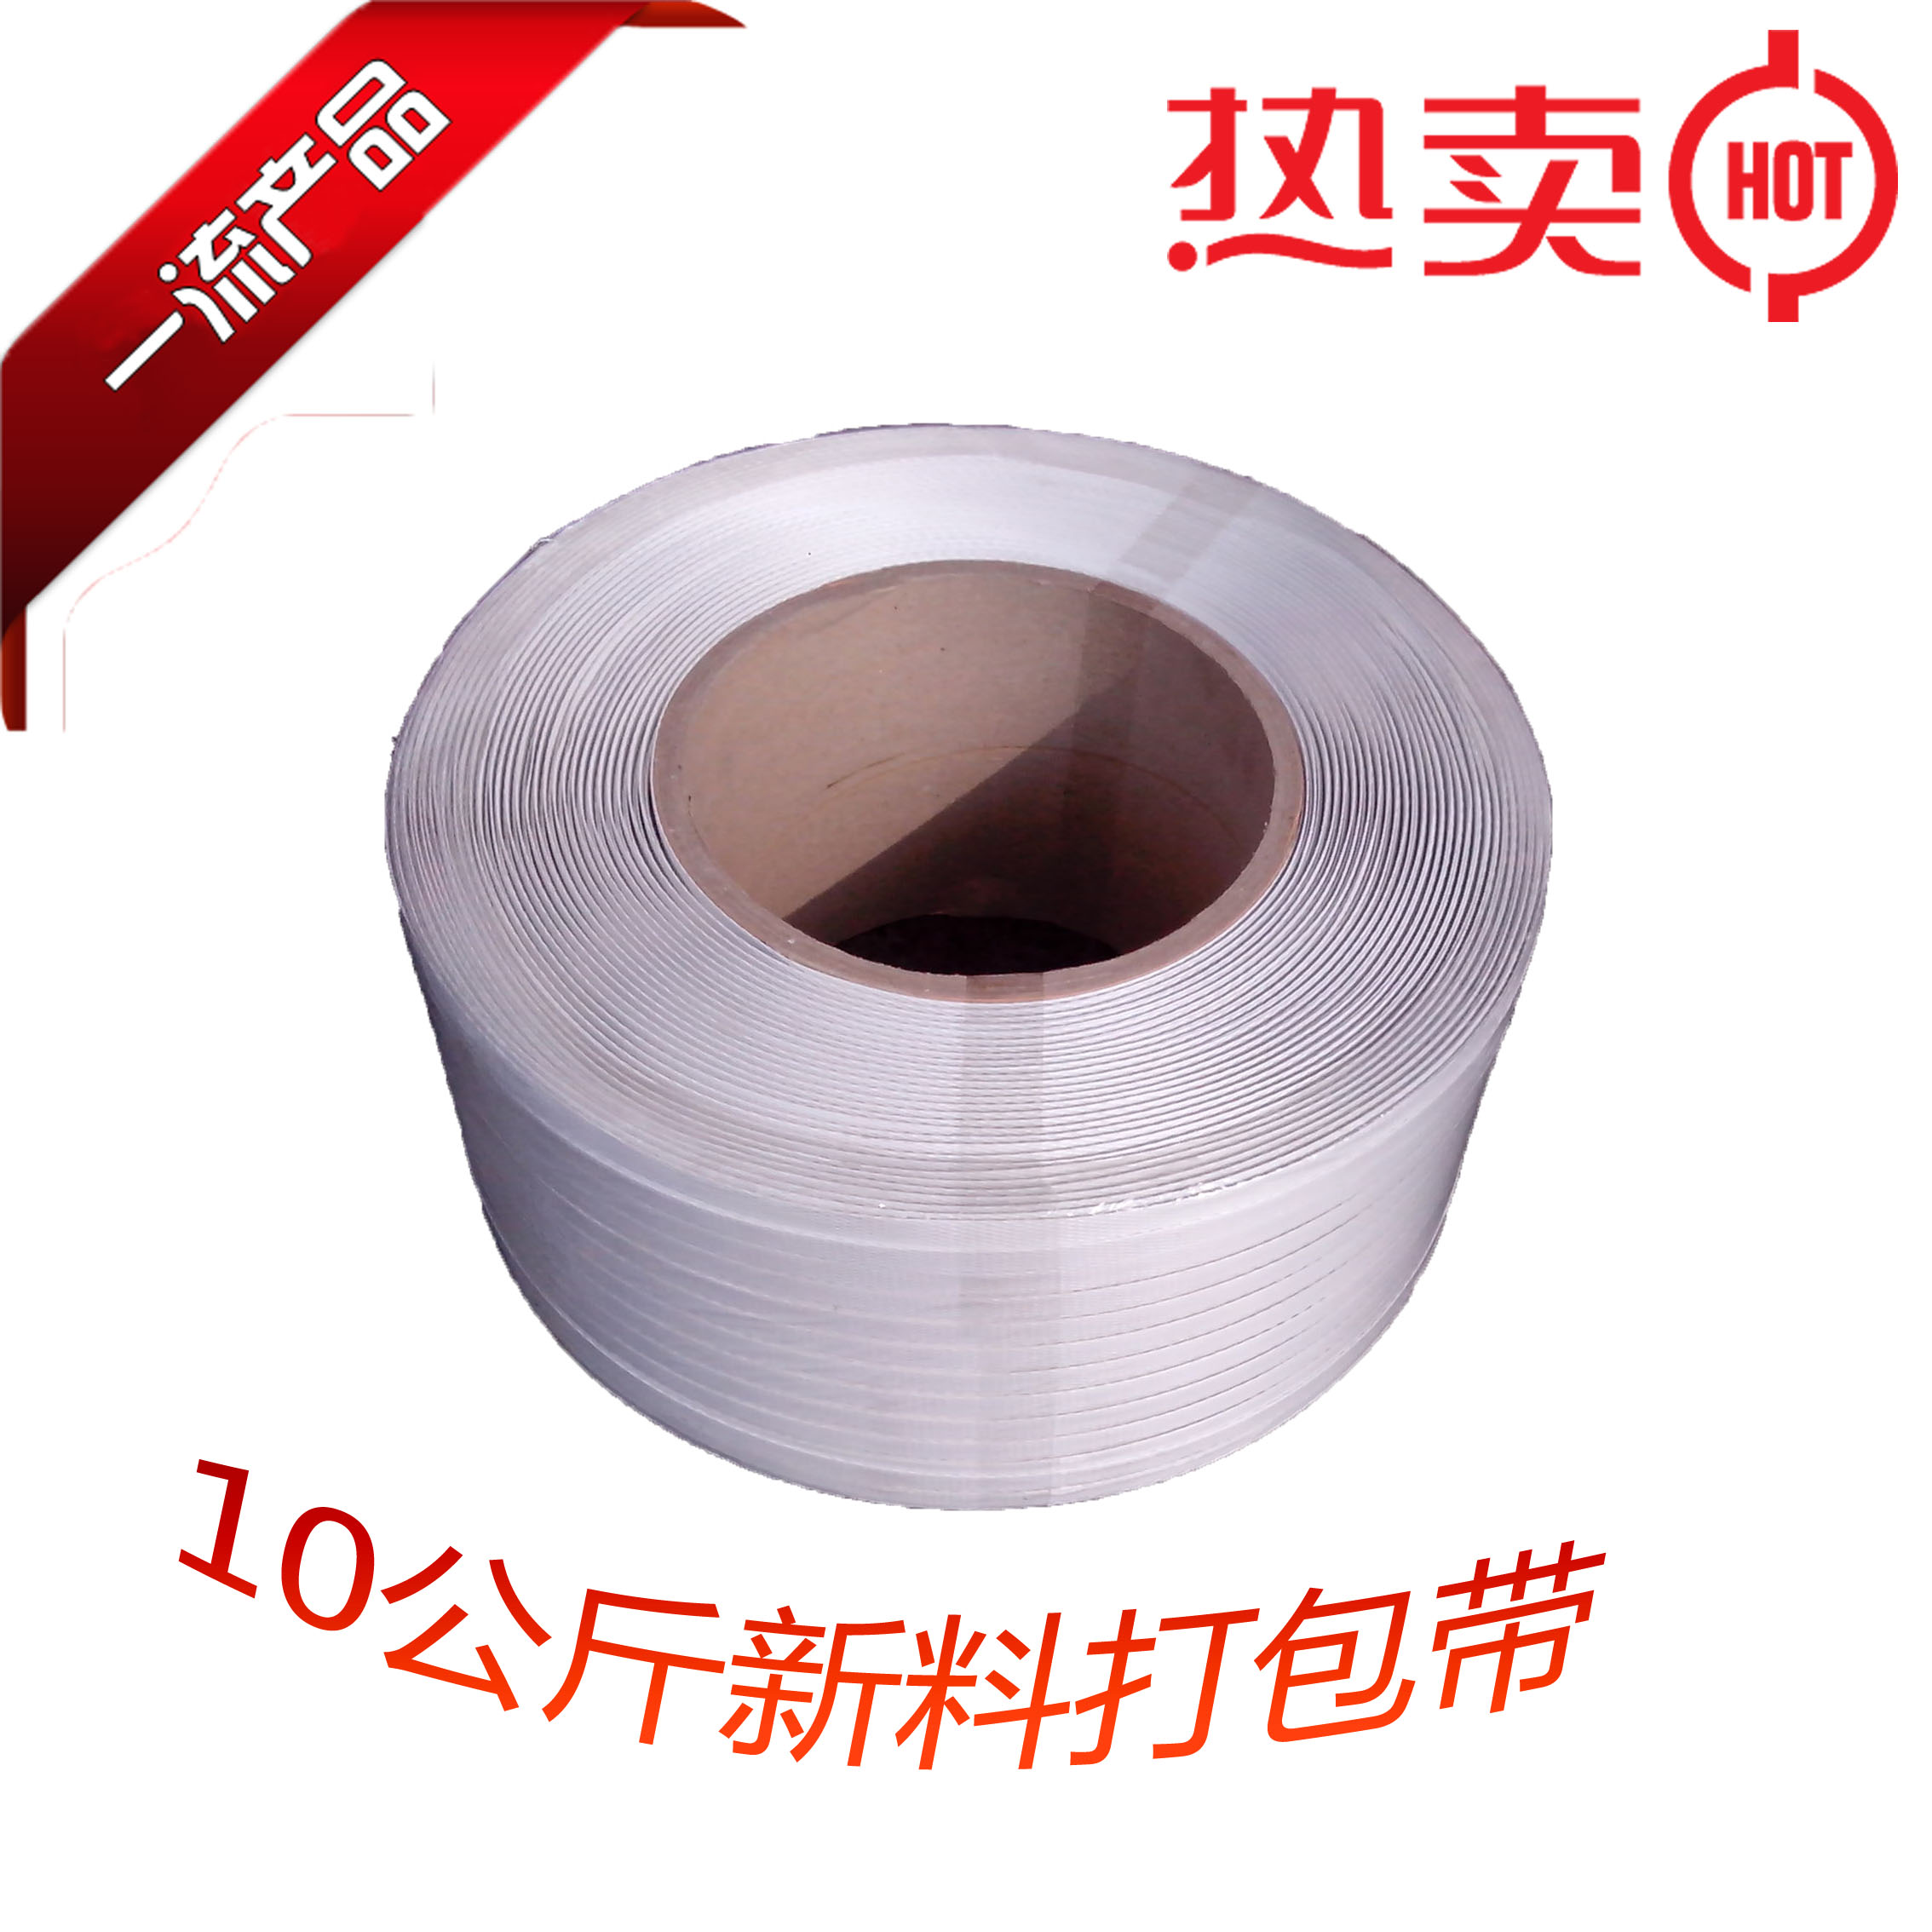 Special color new material, white color machine packaging belt color hot-melt semi-automatic packaging belt